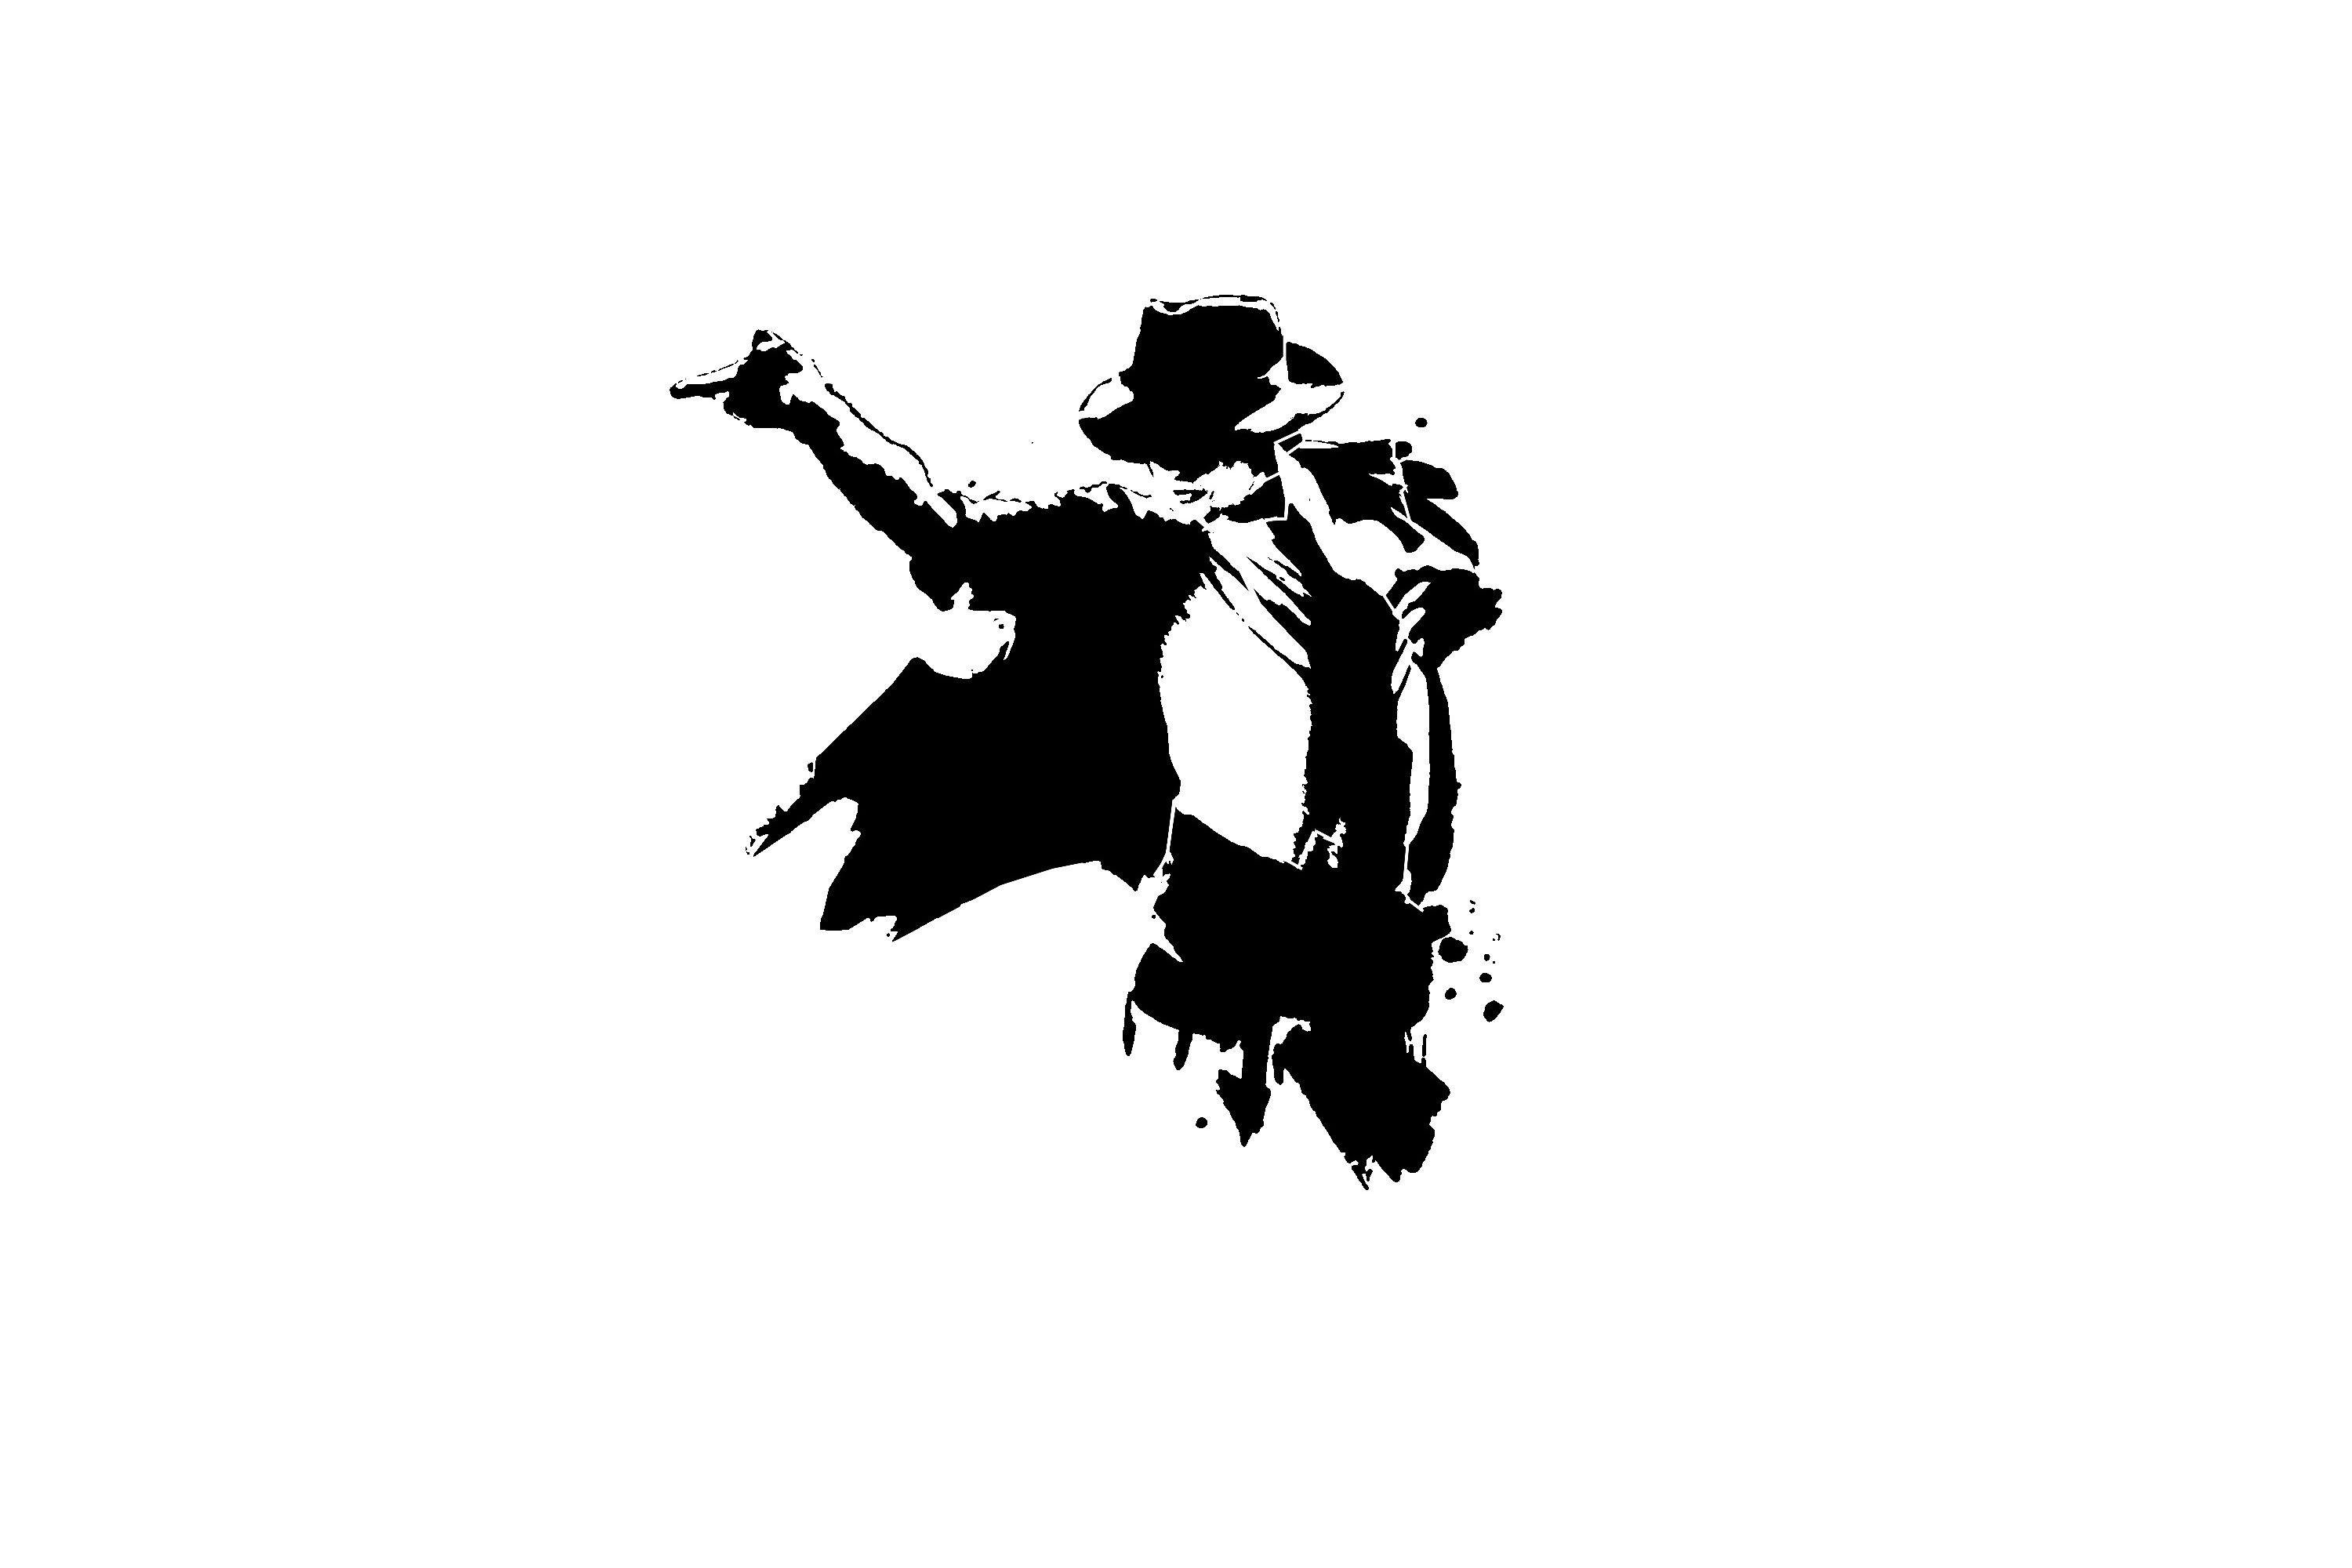 michael jackson face silhouette at getdrawings | free for